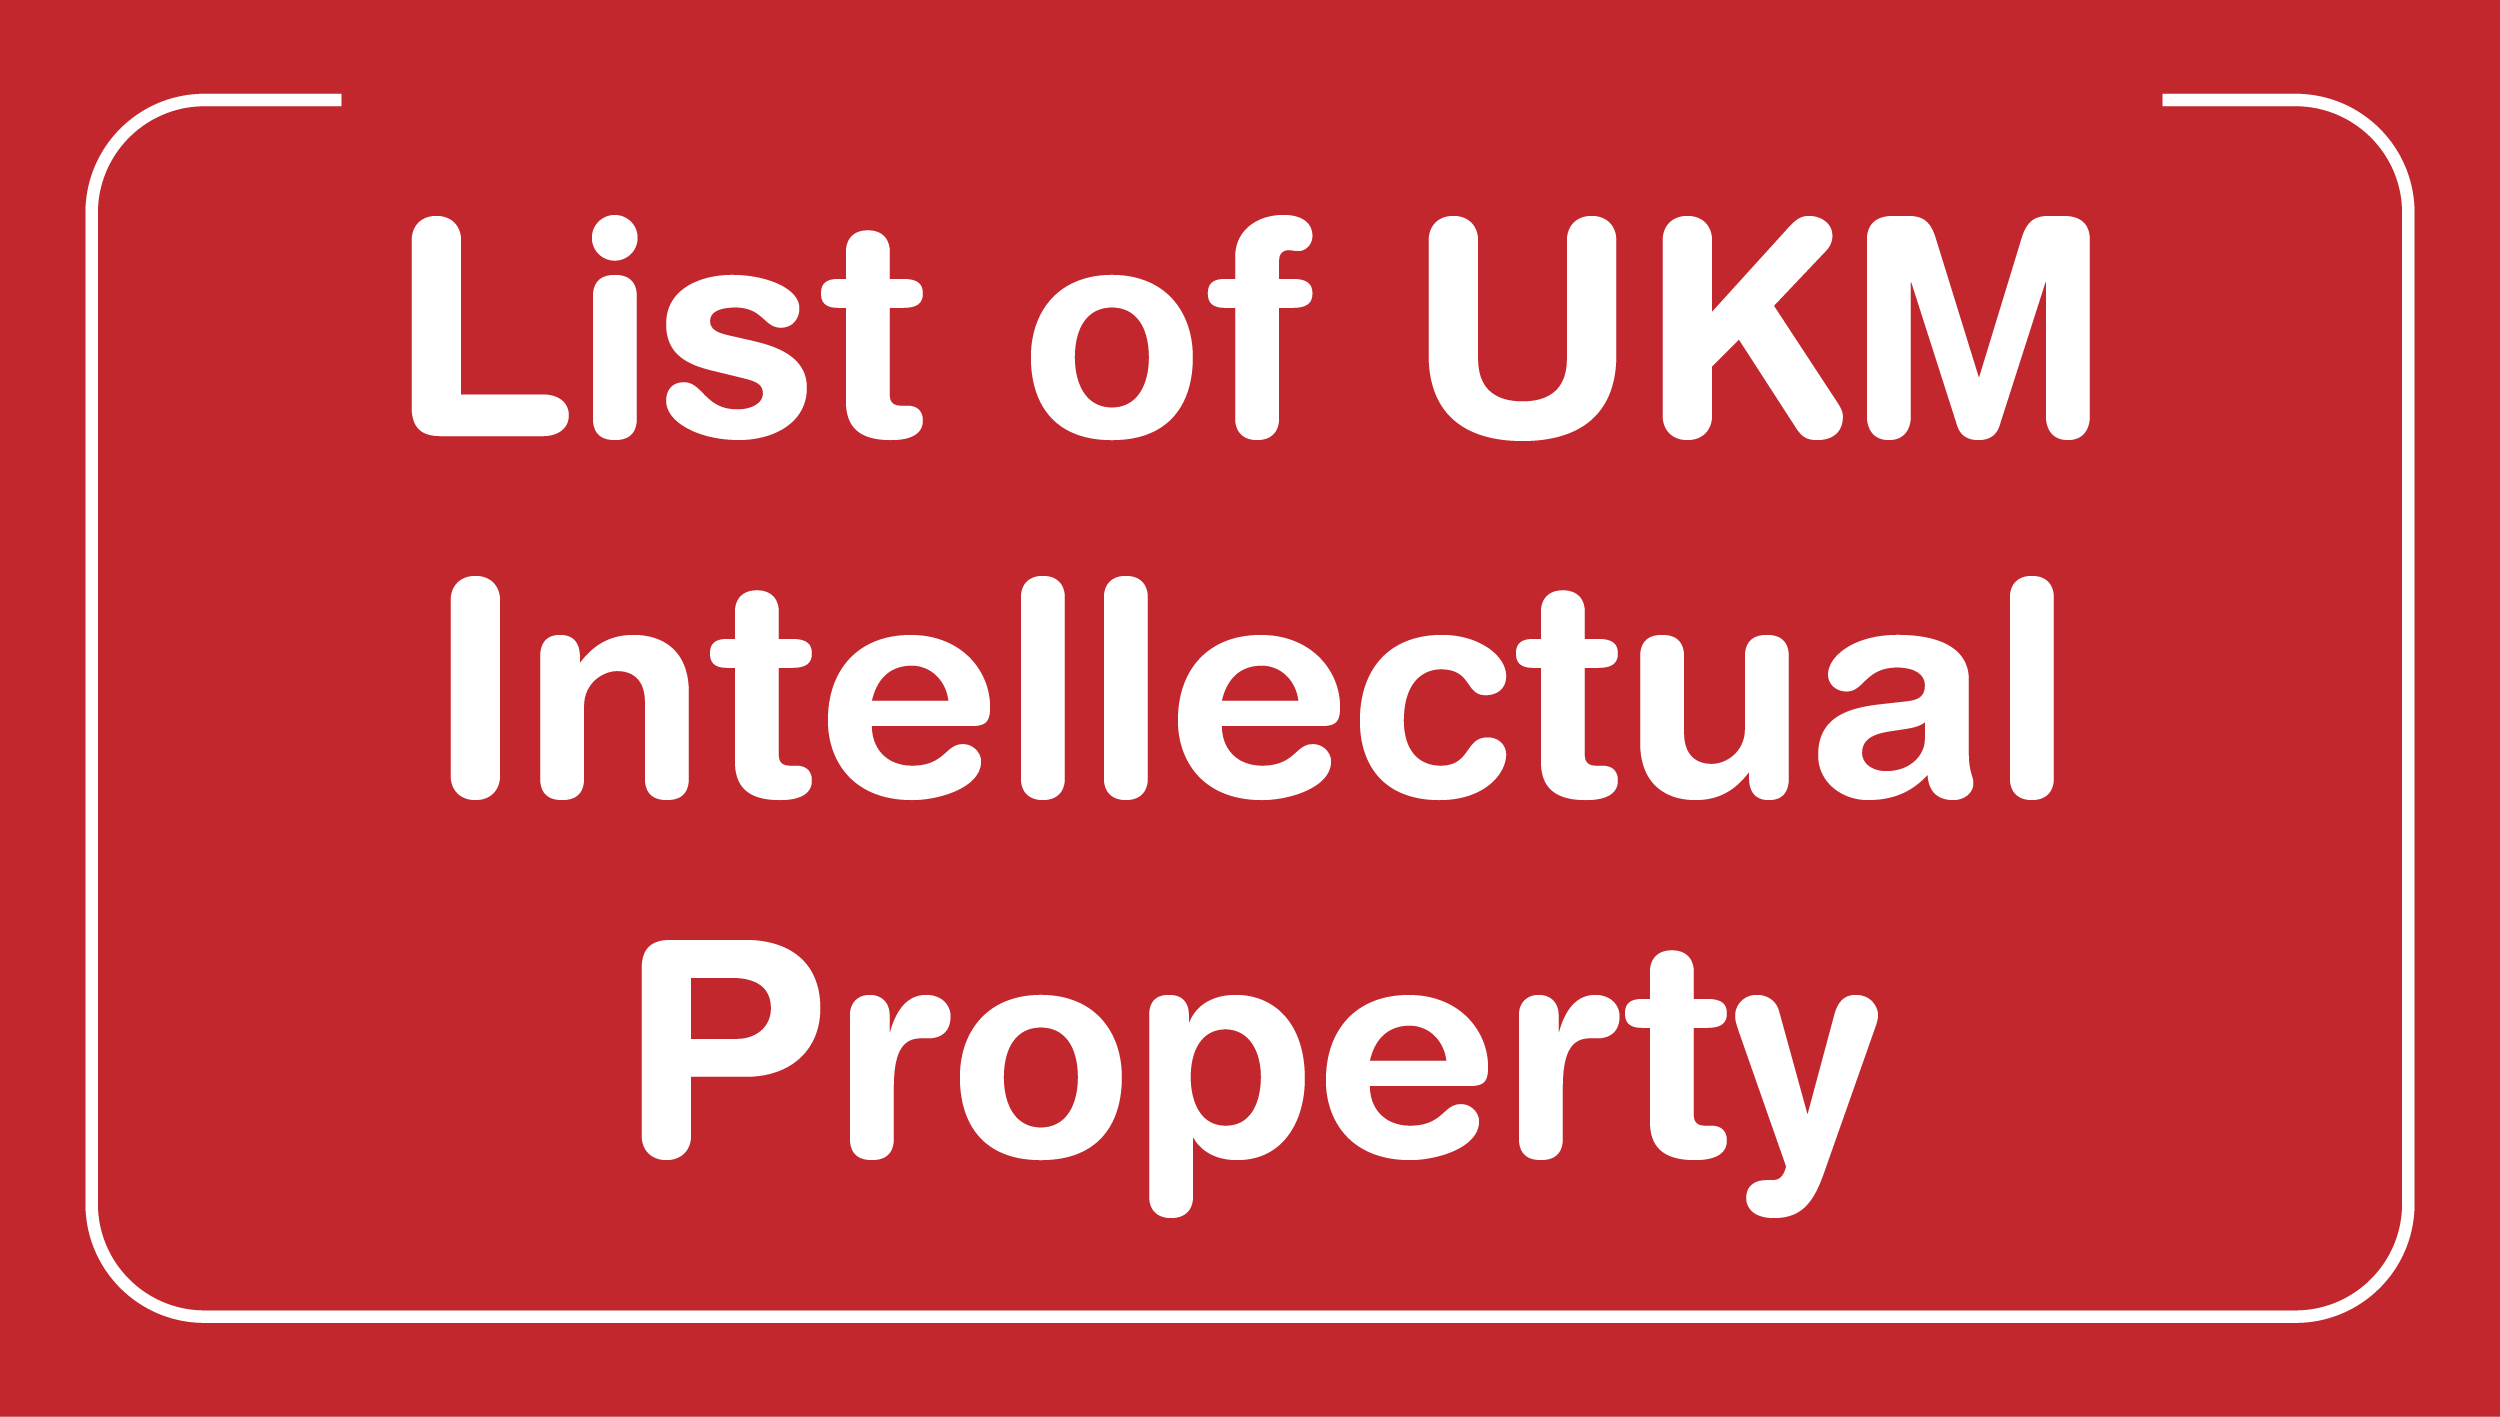 List of UKM Intellectual Property